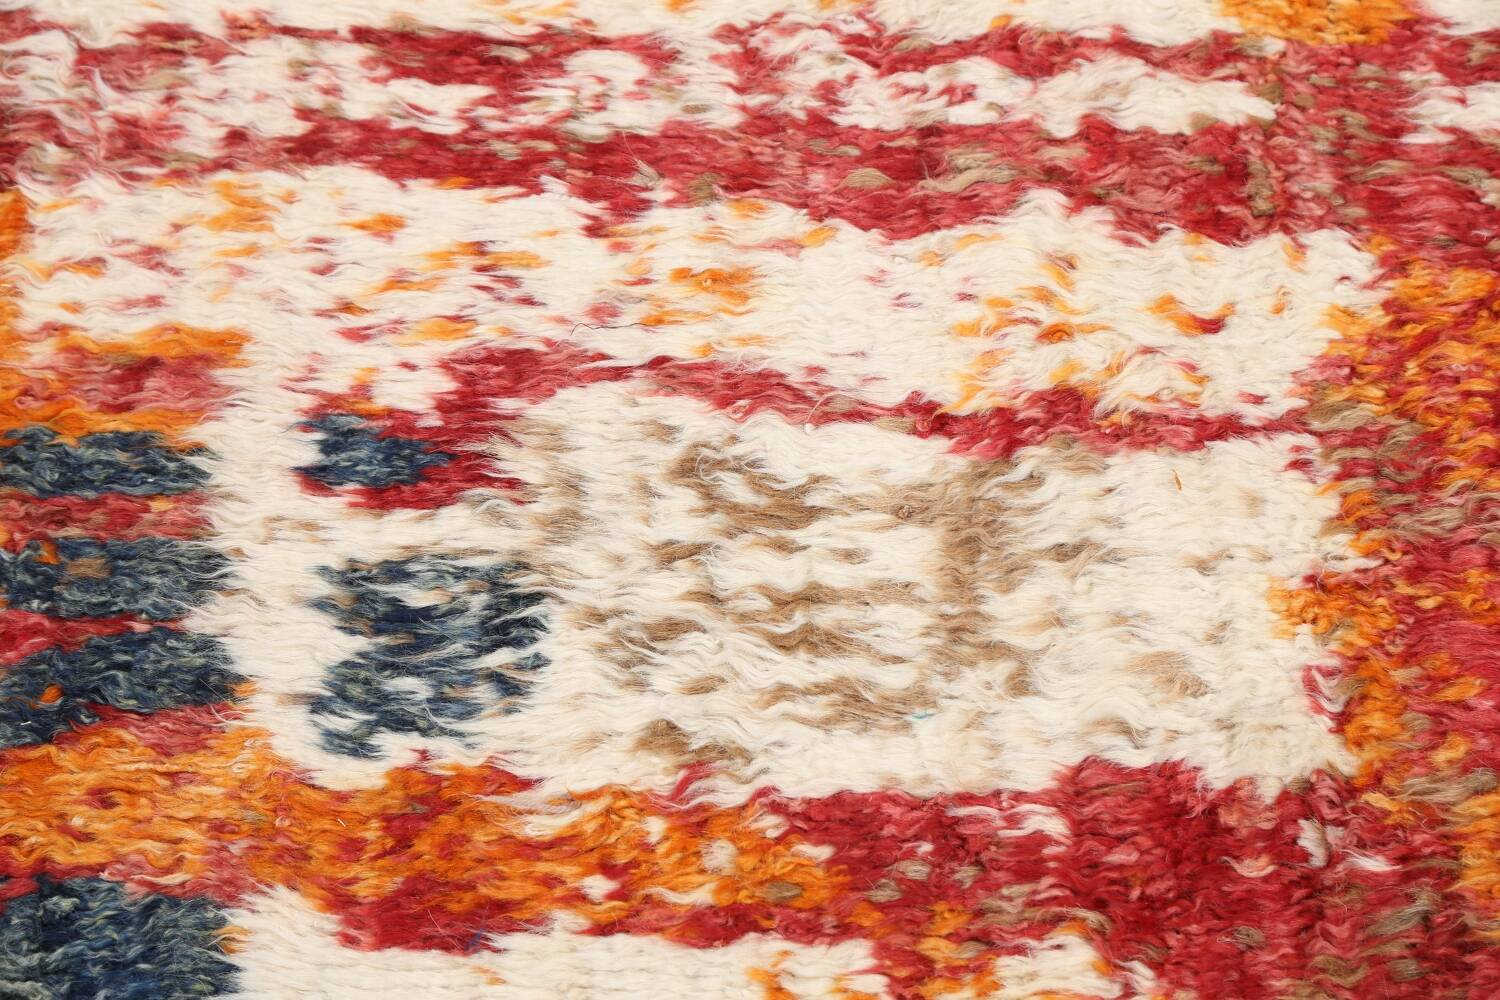 Abstract Moroccan Oriental Area Rug 5x6 image 9